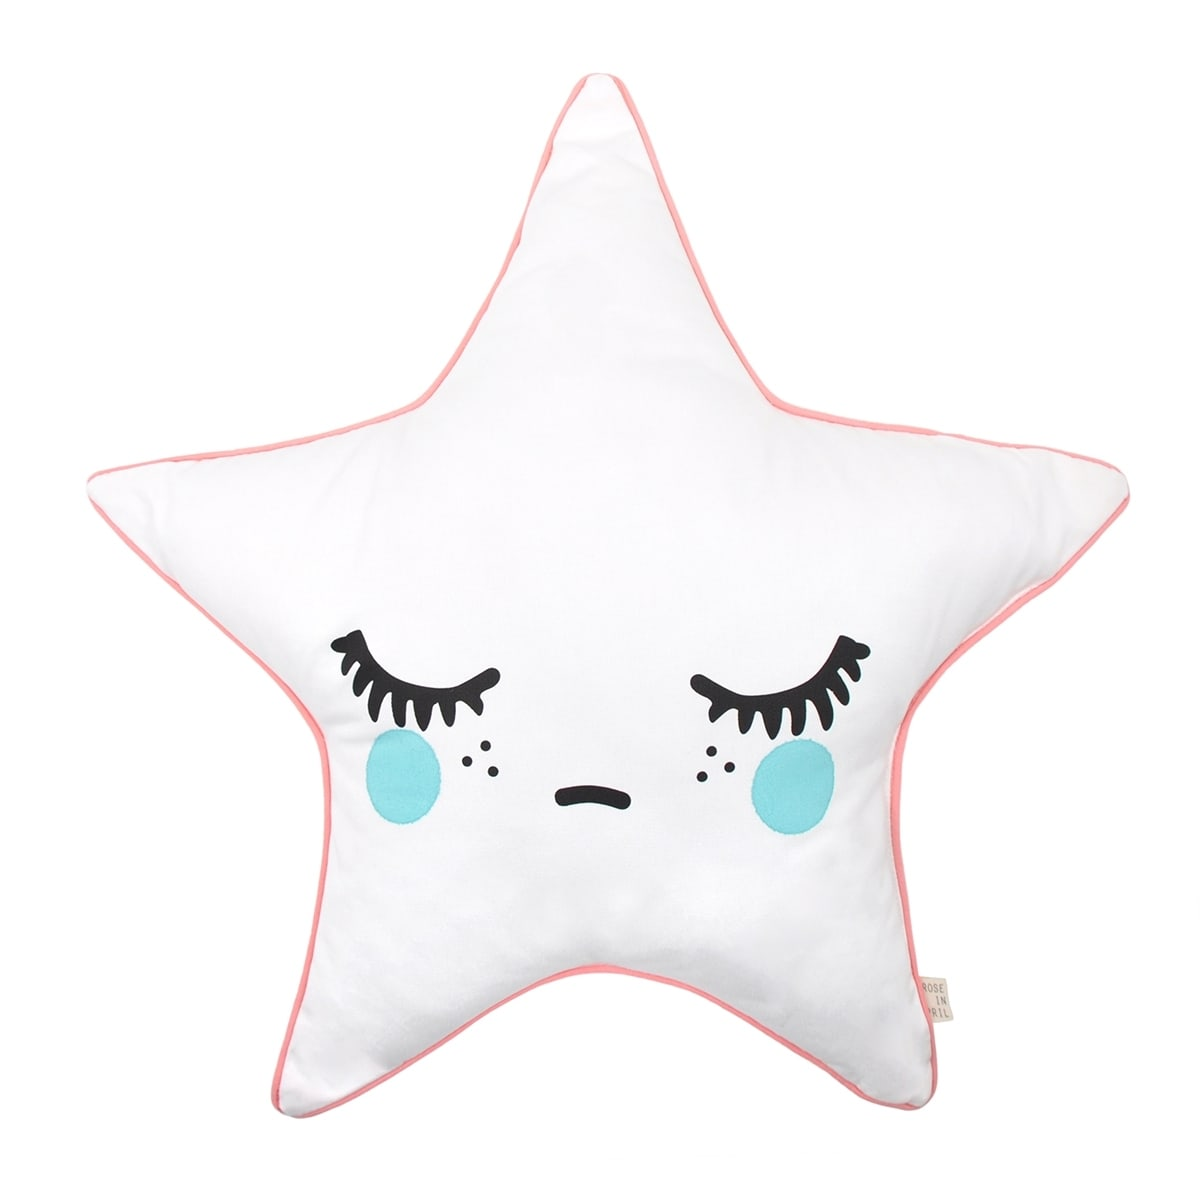 Sleepy Dolly Star Cushion Green